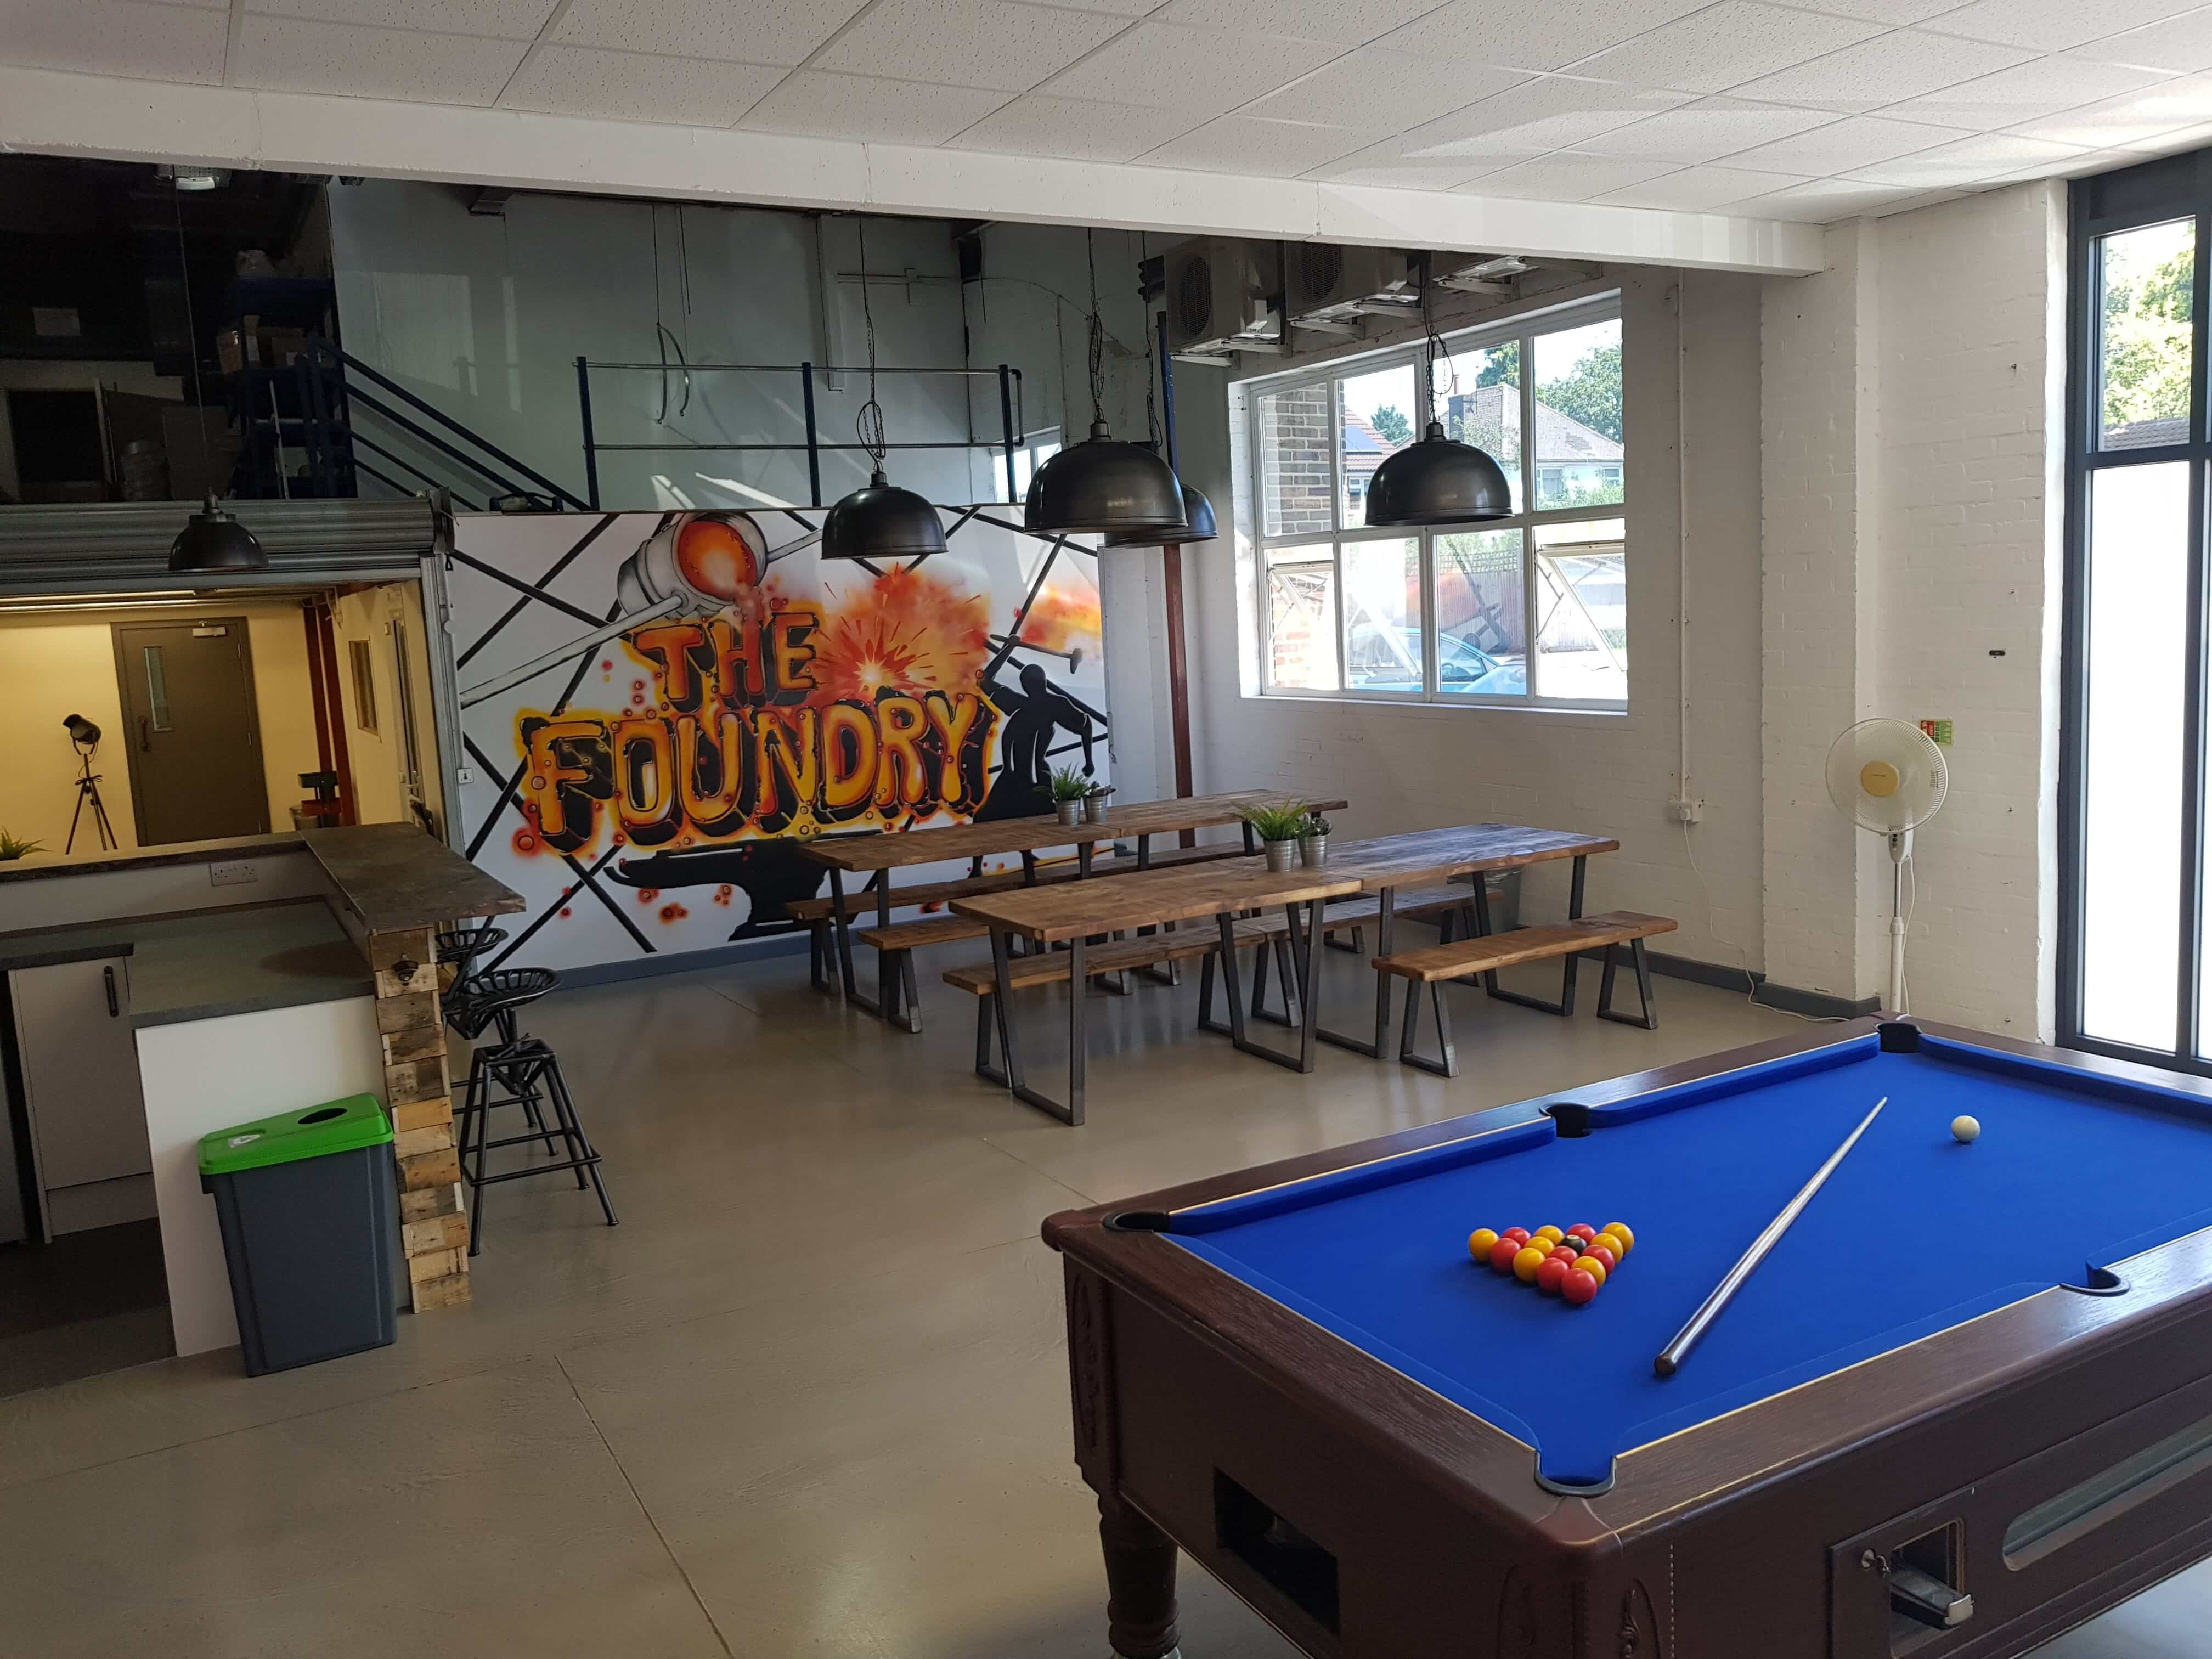 pool table inside the foundry